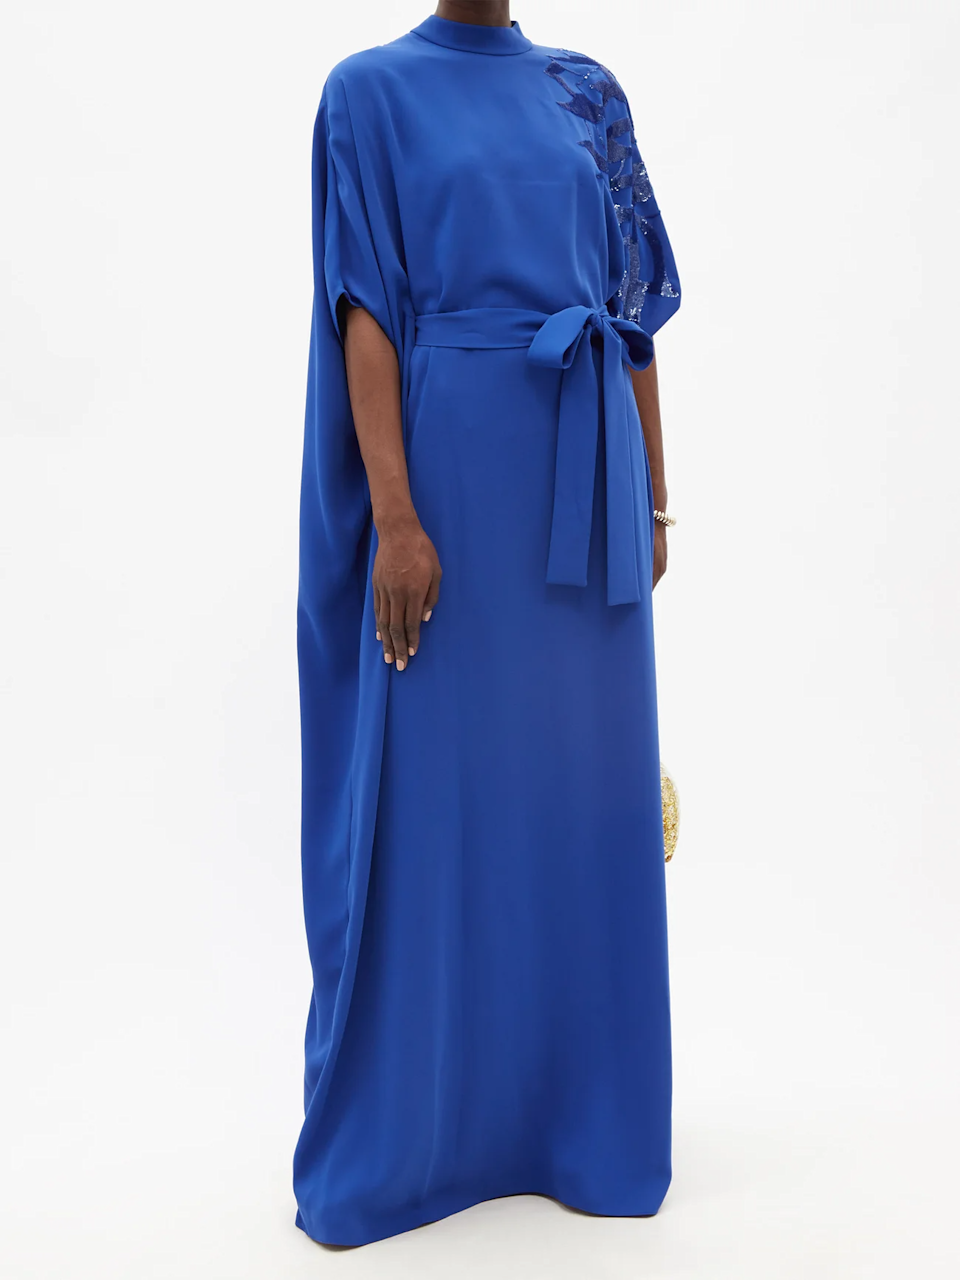 """<h2>Fall Wedding-Guest Black-Tie Dresses</h2><br>If you've got a formal event on the books, these gorgeous floor-length gowns with eye-catching details will satisfy the black-tie dress code without leaving you cold. <br><br><strong>Carolina Herrera</strong> Sequinned sash-waist crepe maxi dress, $, available at <a href=""""https://go.skimresources.com/?id=30283X879131&url=https%3A%2F%2Fwww.matchesfashion.com%2Fus%2Fproducts%2FCarolina-Herrera-Sequinned-sash-waist-crepe-maxi-dress-1424642"""" rel=""""nofollow noopener"""" target=""""_blank"""" data-ylk=""""slk:MatchesFashion"""" class=""""link rapid-noclick-resp"""">MatchesFashion</a>"""